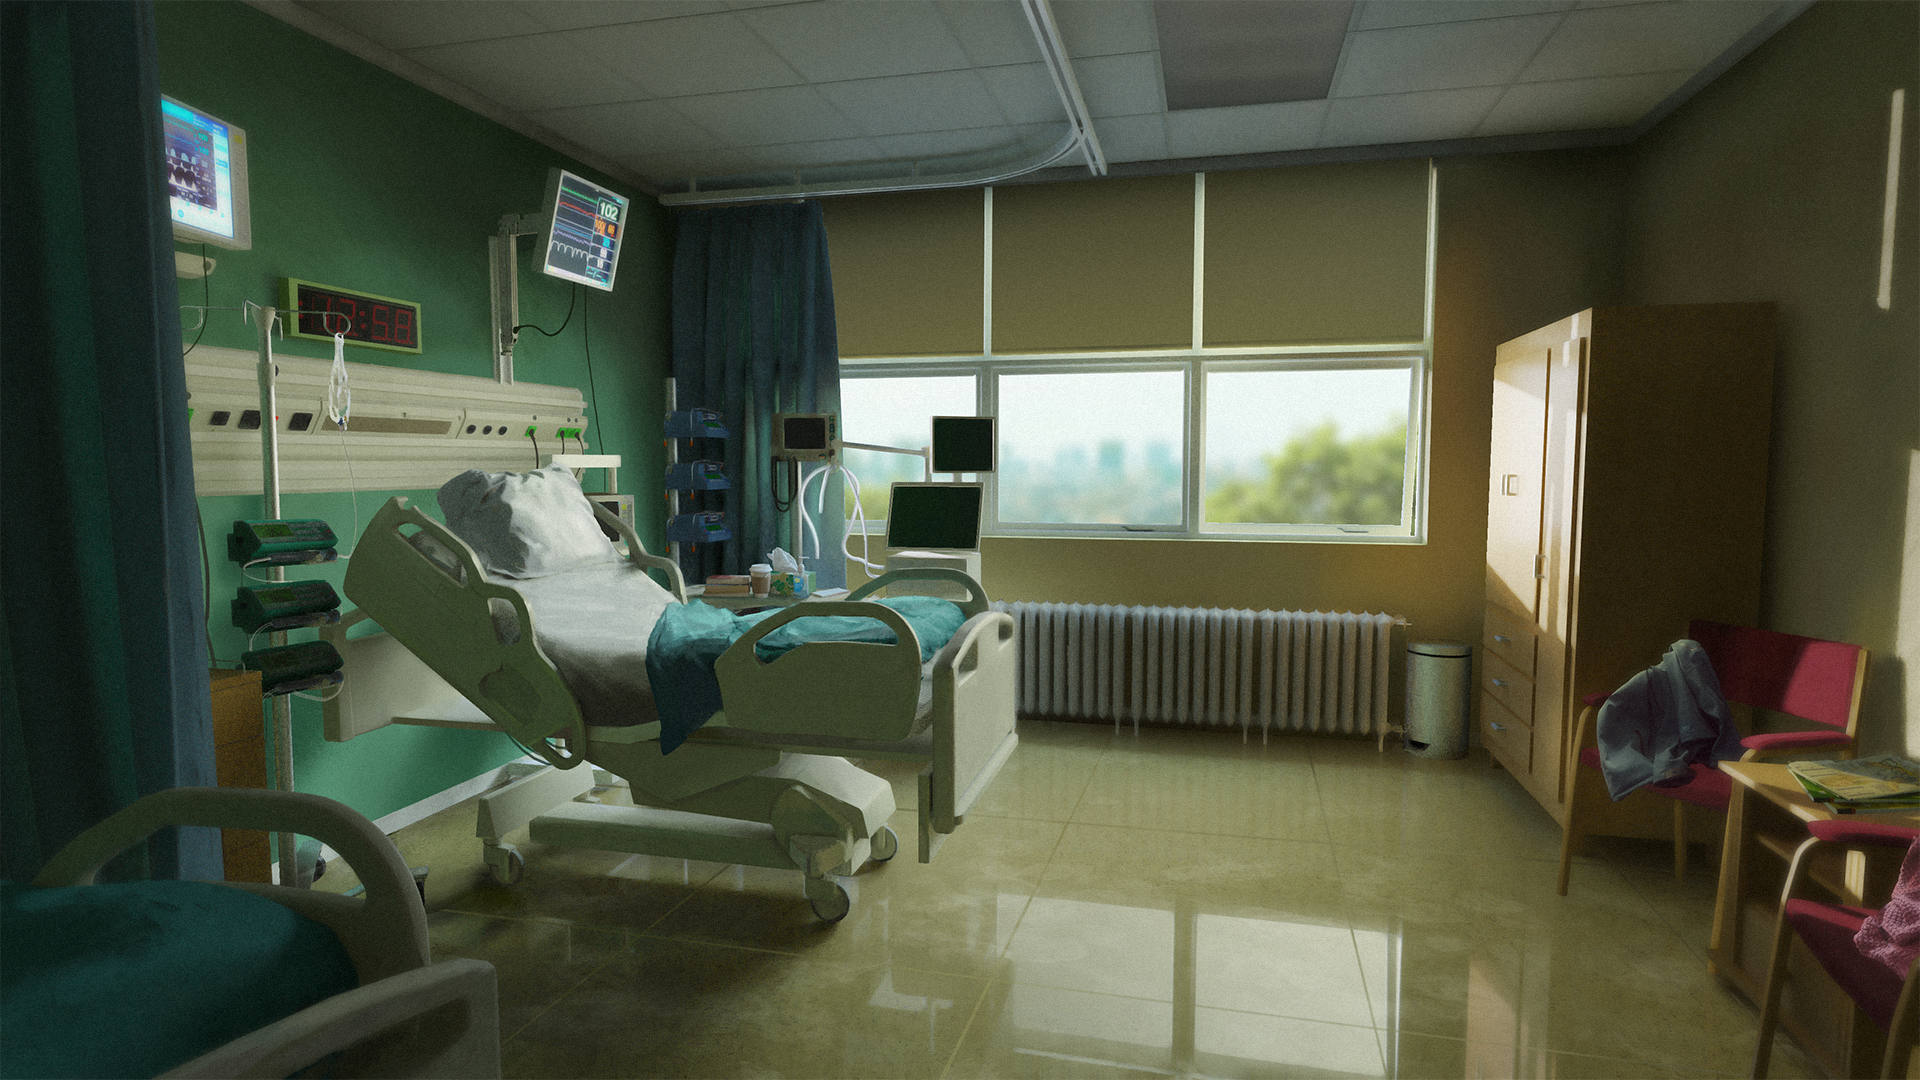 HospitalRoom_Final_NoFX_1920_Noise.png